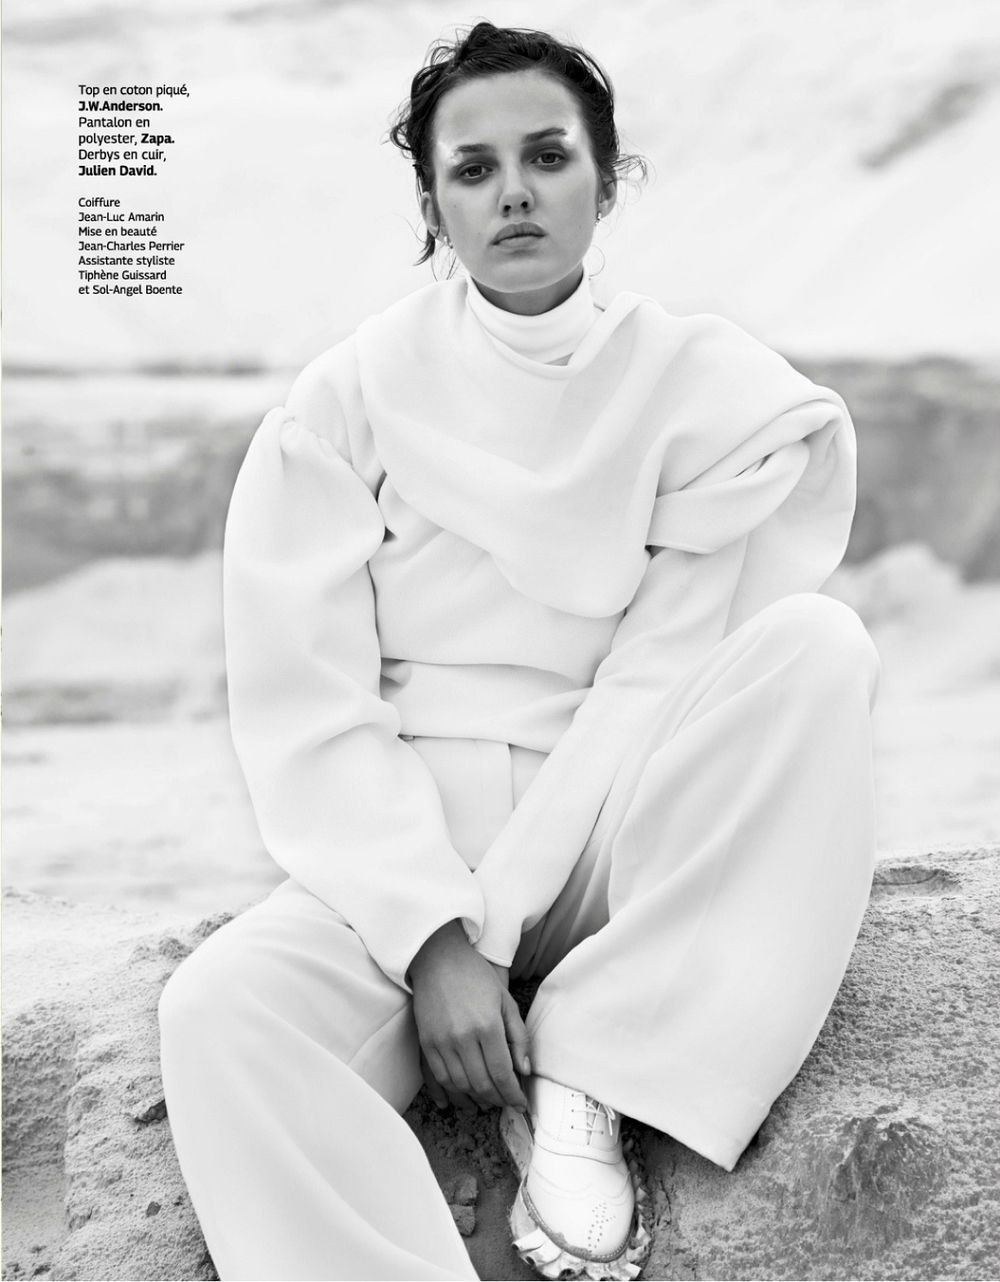 Taghi-Naderzad-Alice-le-Paige-Grazia-19-December-2014-12.jpeg